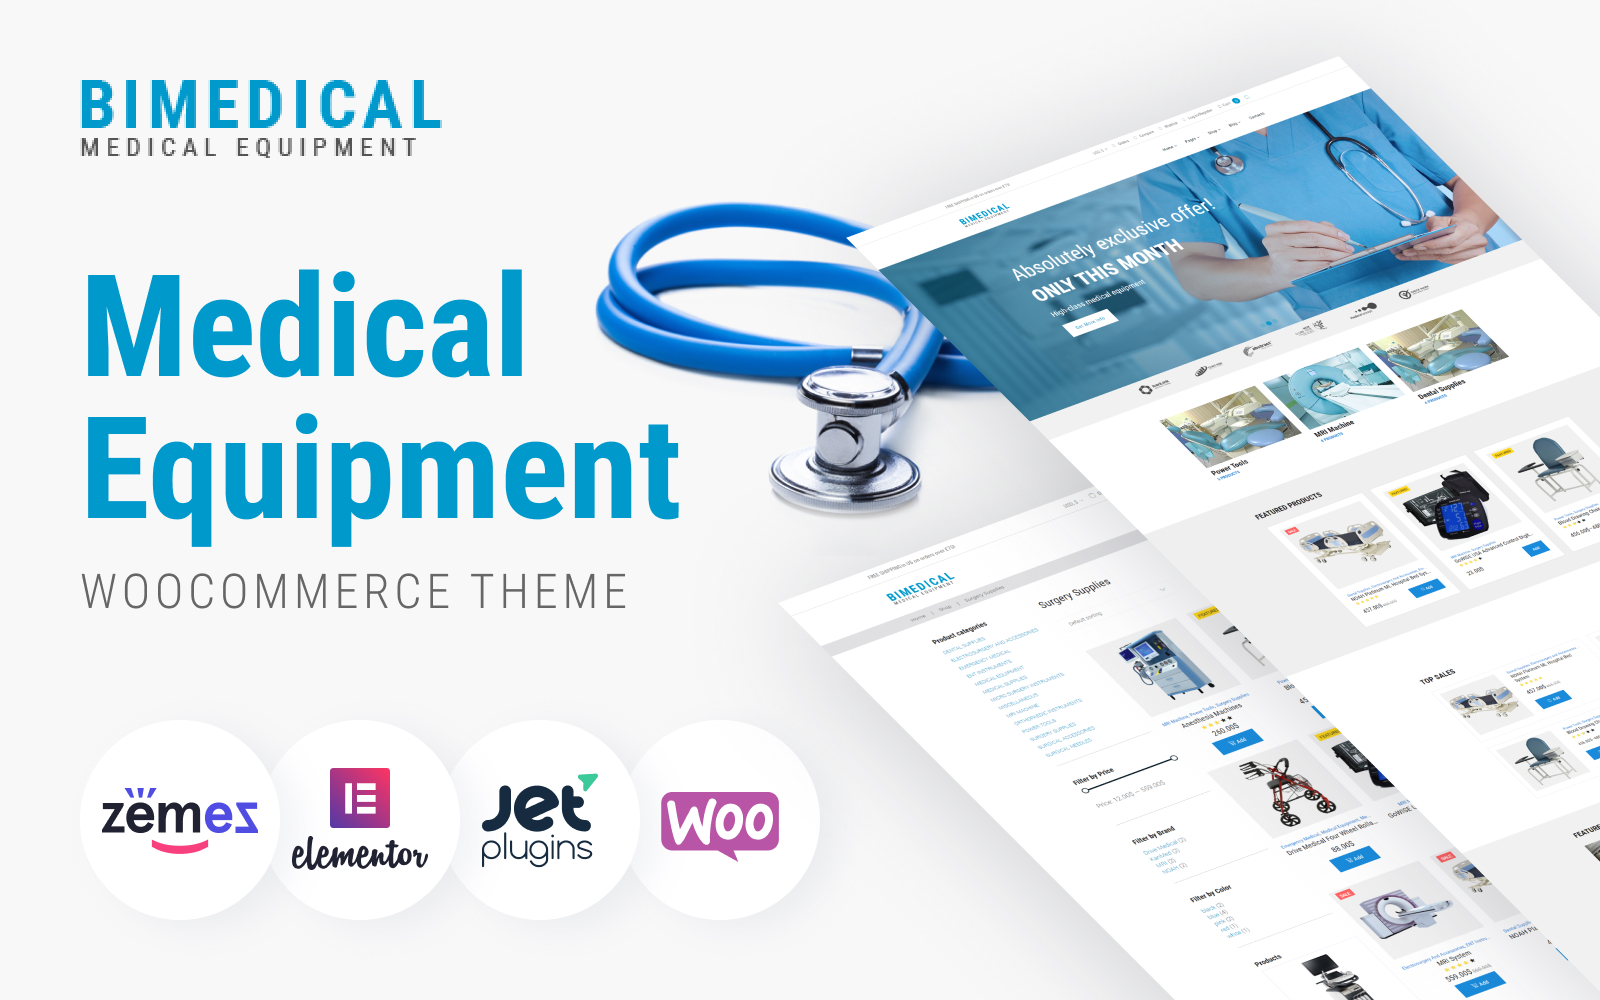 Reszponzív Bimedical- Medical Equipment Responsive WooCommerce sablon 64363